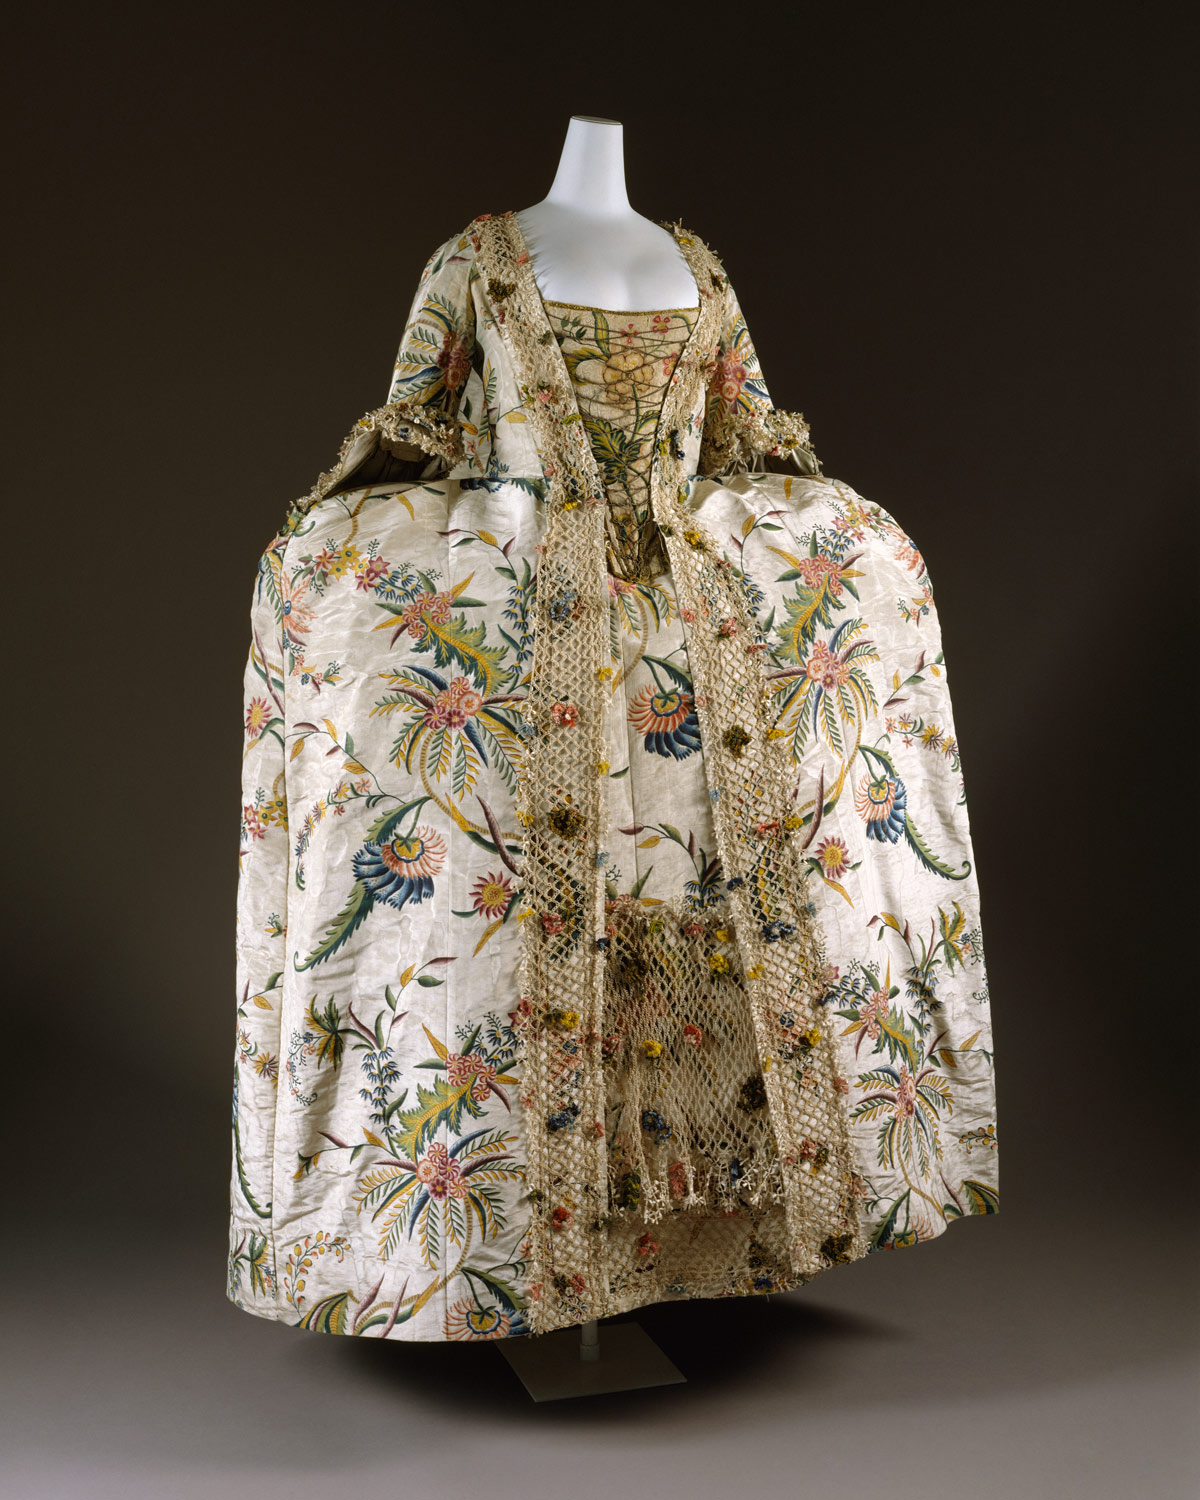 eighteenth century european dress essay heilbrunn timeline of robe à la française